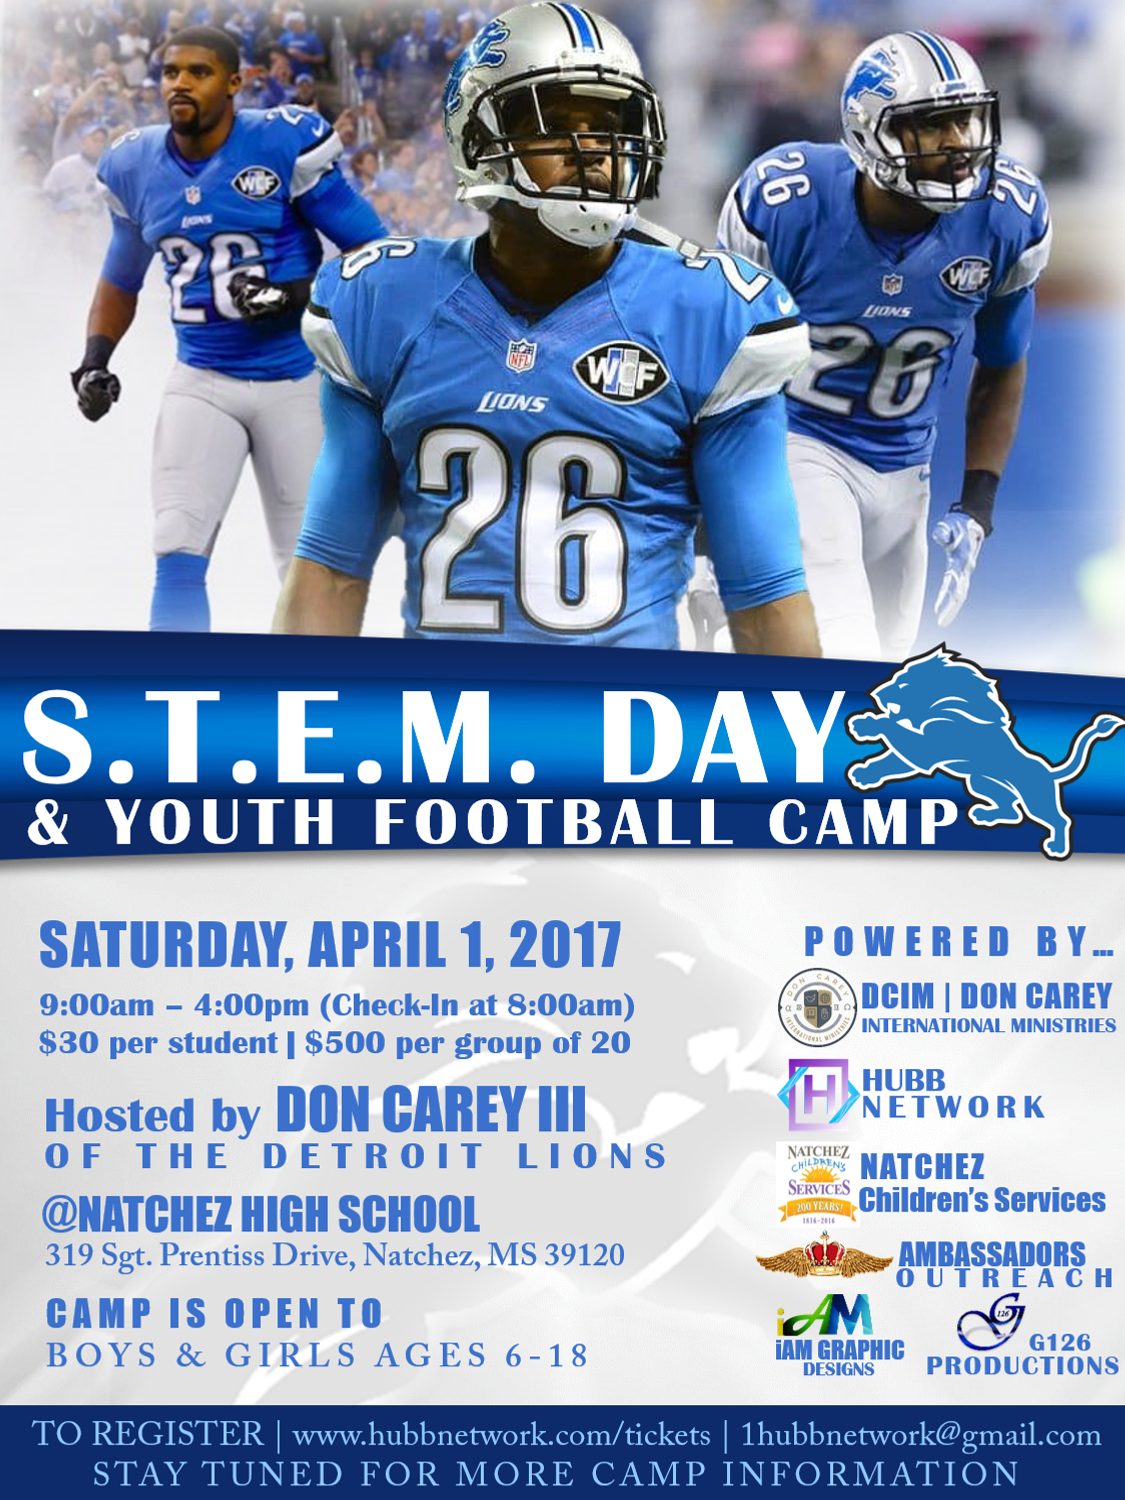 STEM and FOOTBALL CAMP.OFFICIAL3